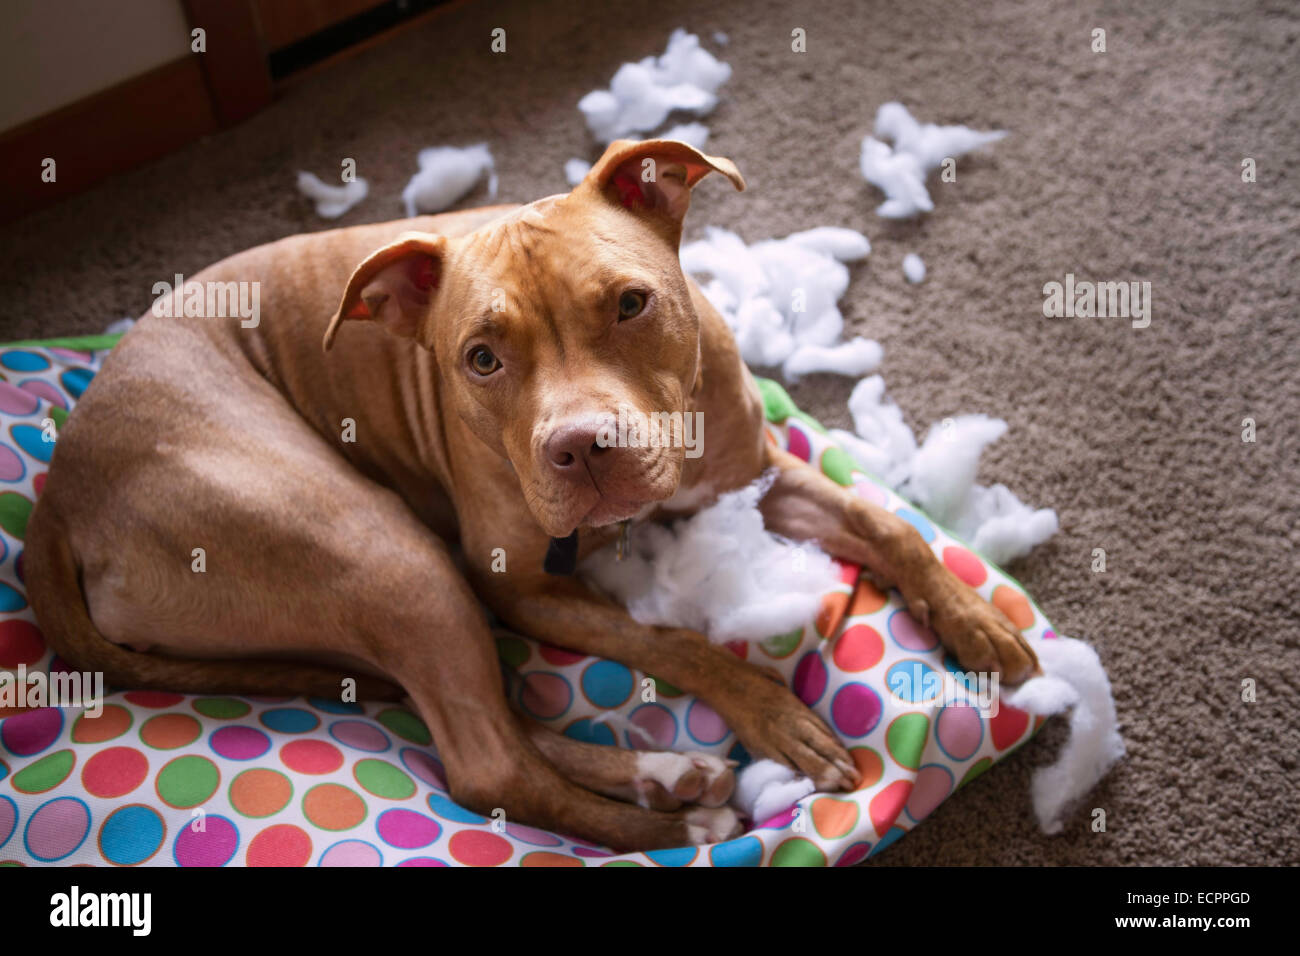 Dog looking guilty on ripped dog bed - Stock Image